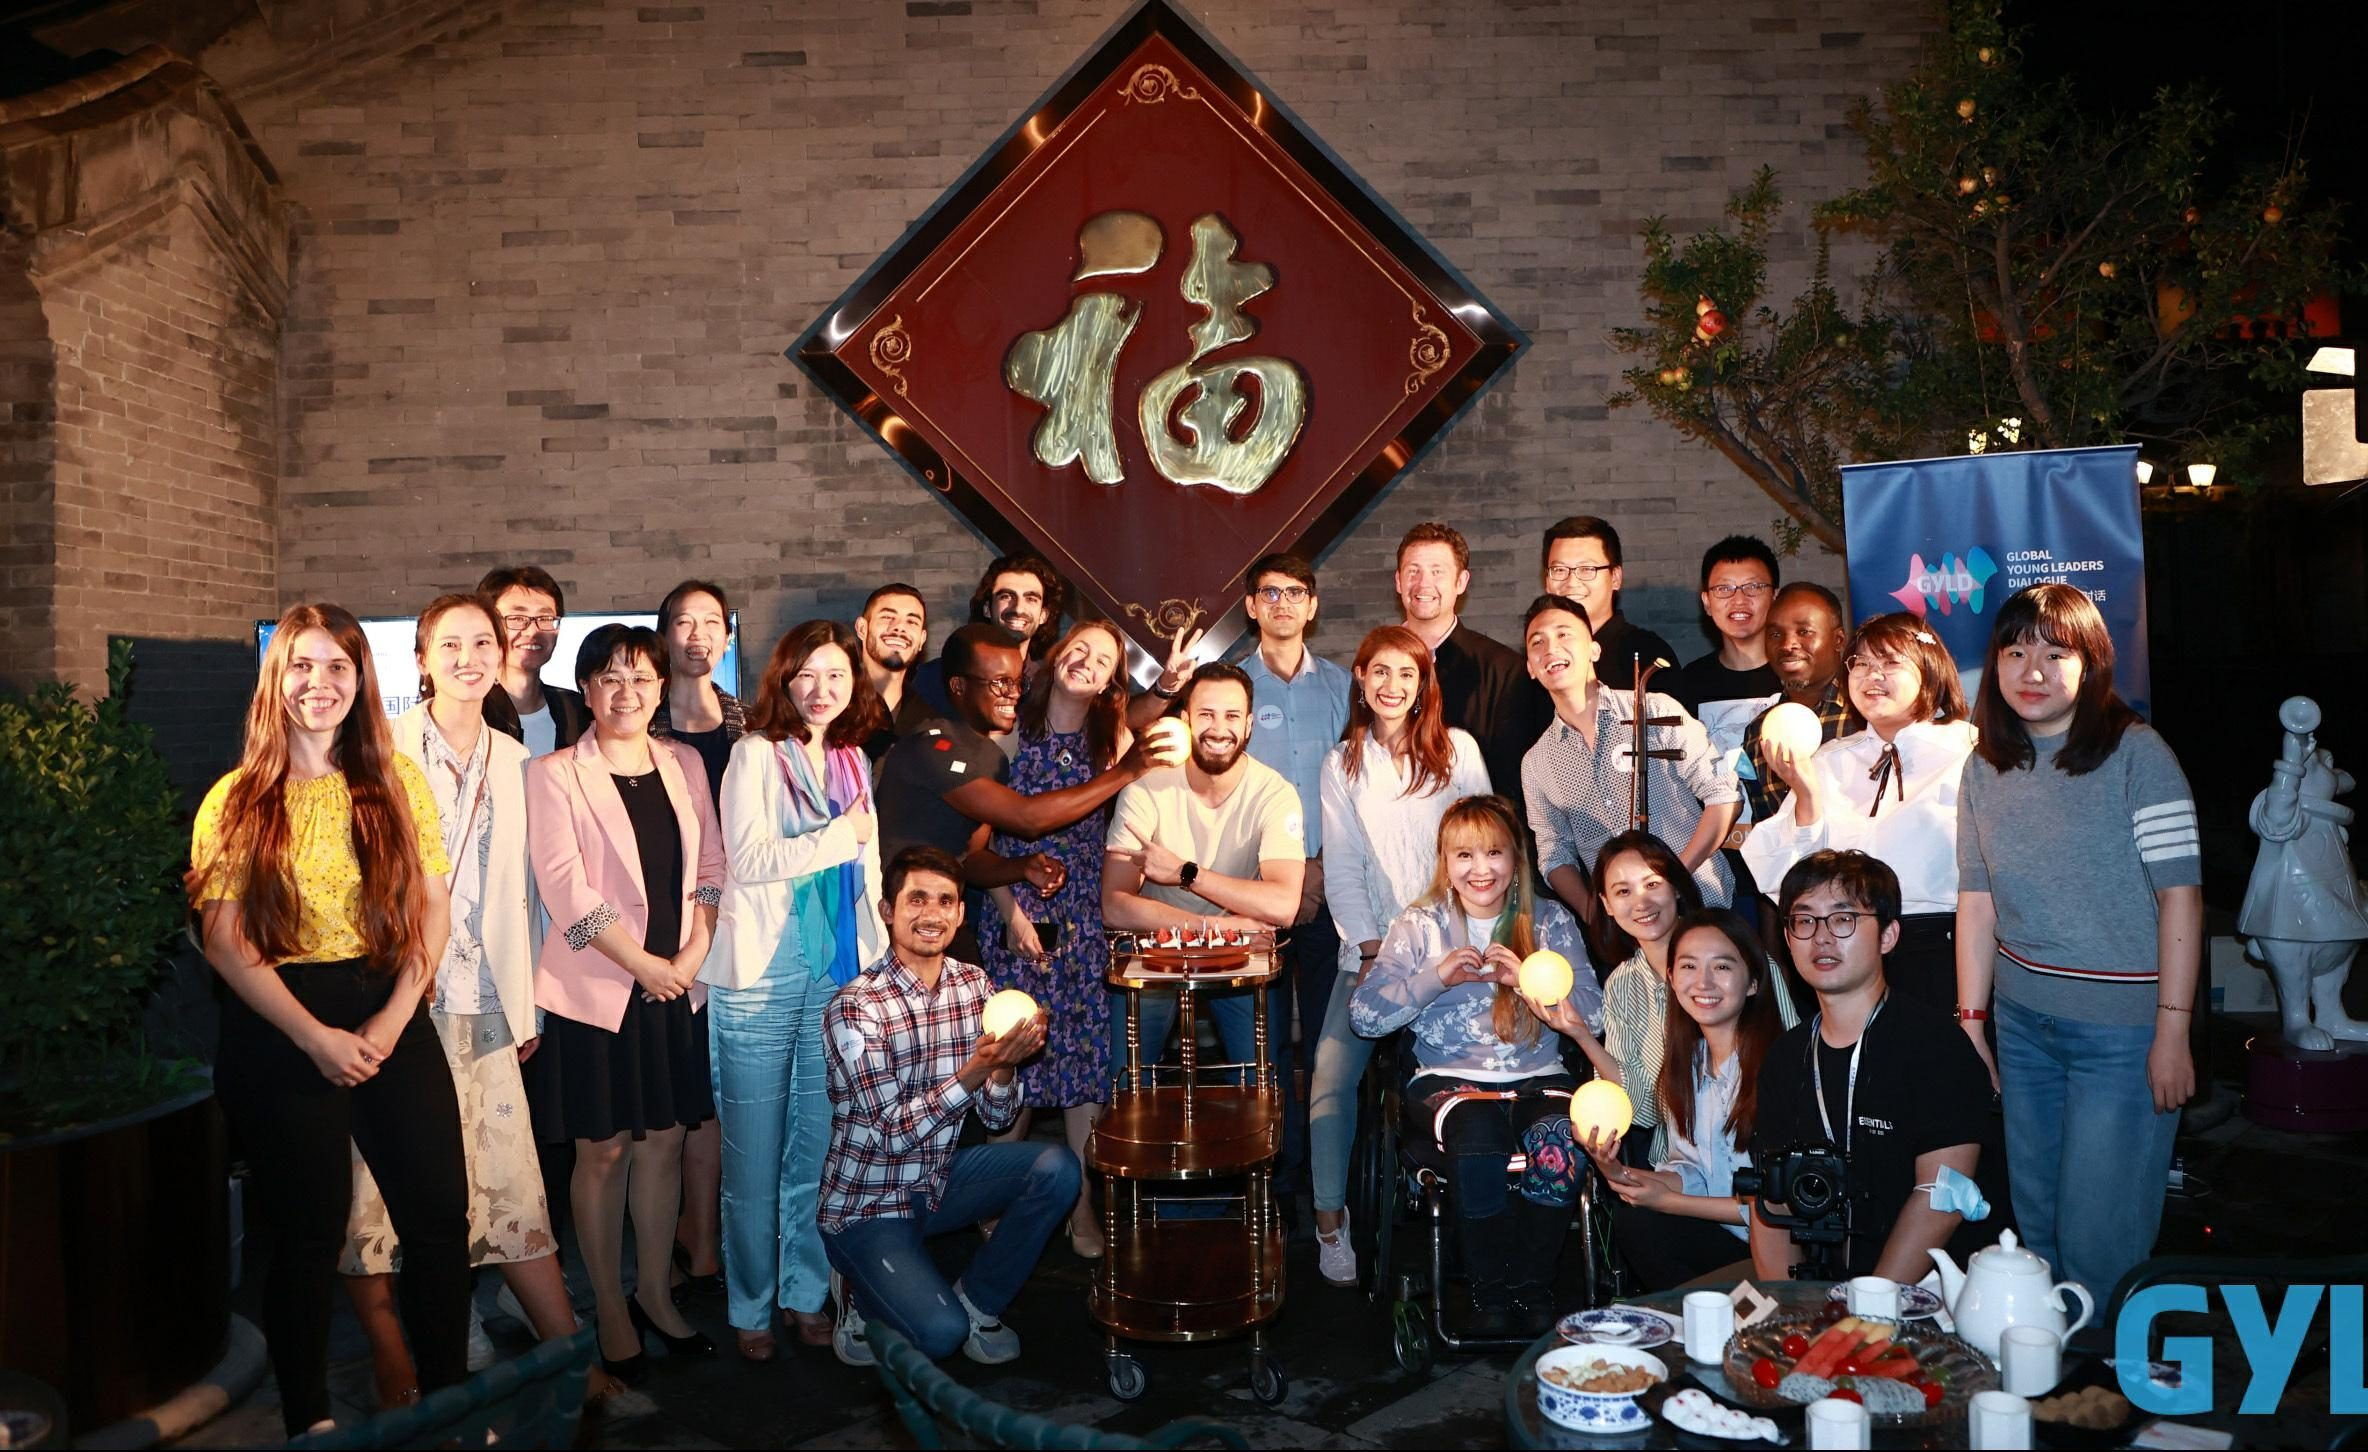 Experiencing traditional Chinese culture at Mid-Autumn Festival